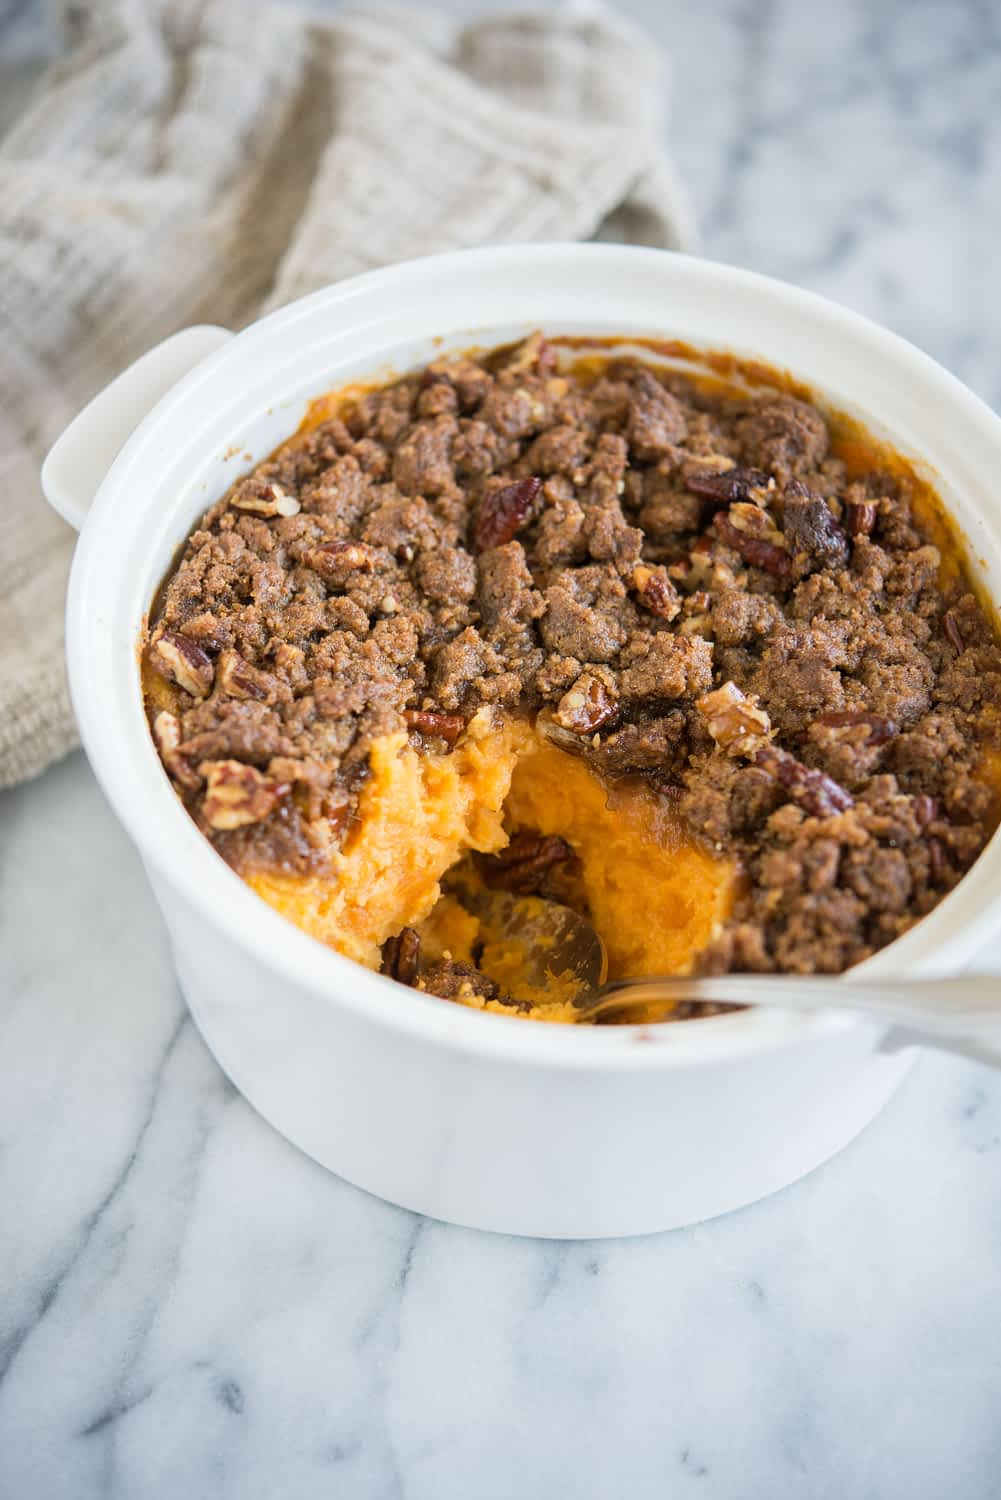 sweet potato casserole with pecan topping in a white casserole dish with a scoop taken out of it sitting on a marble surface